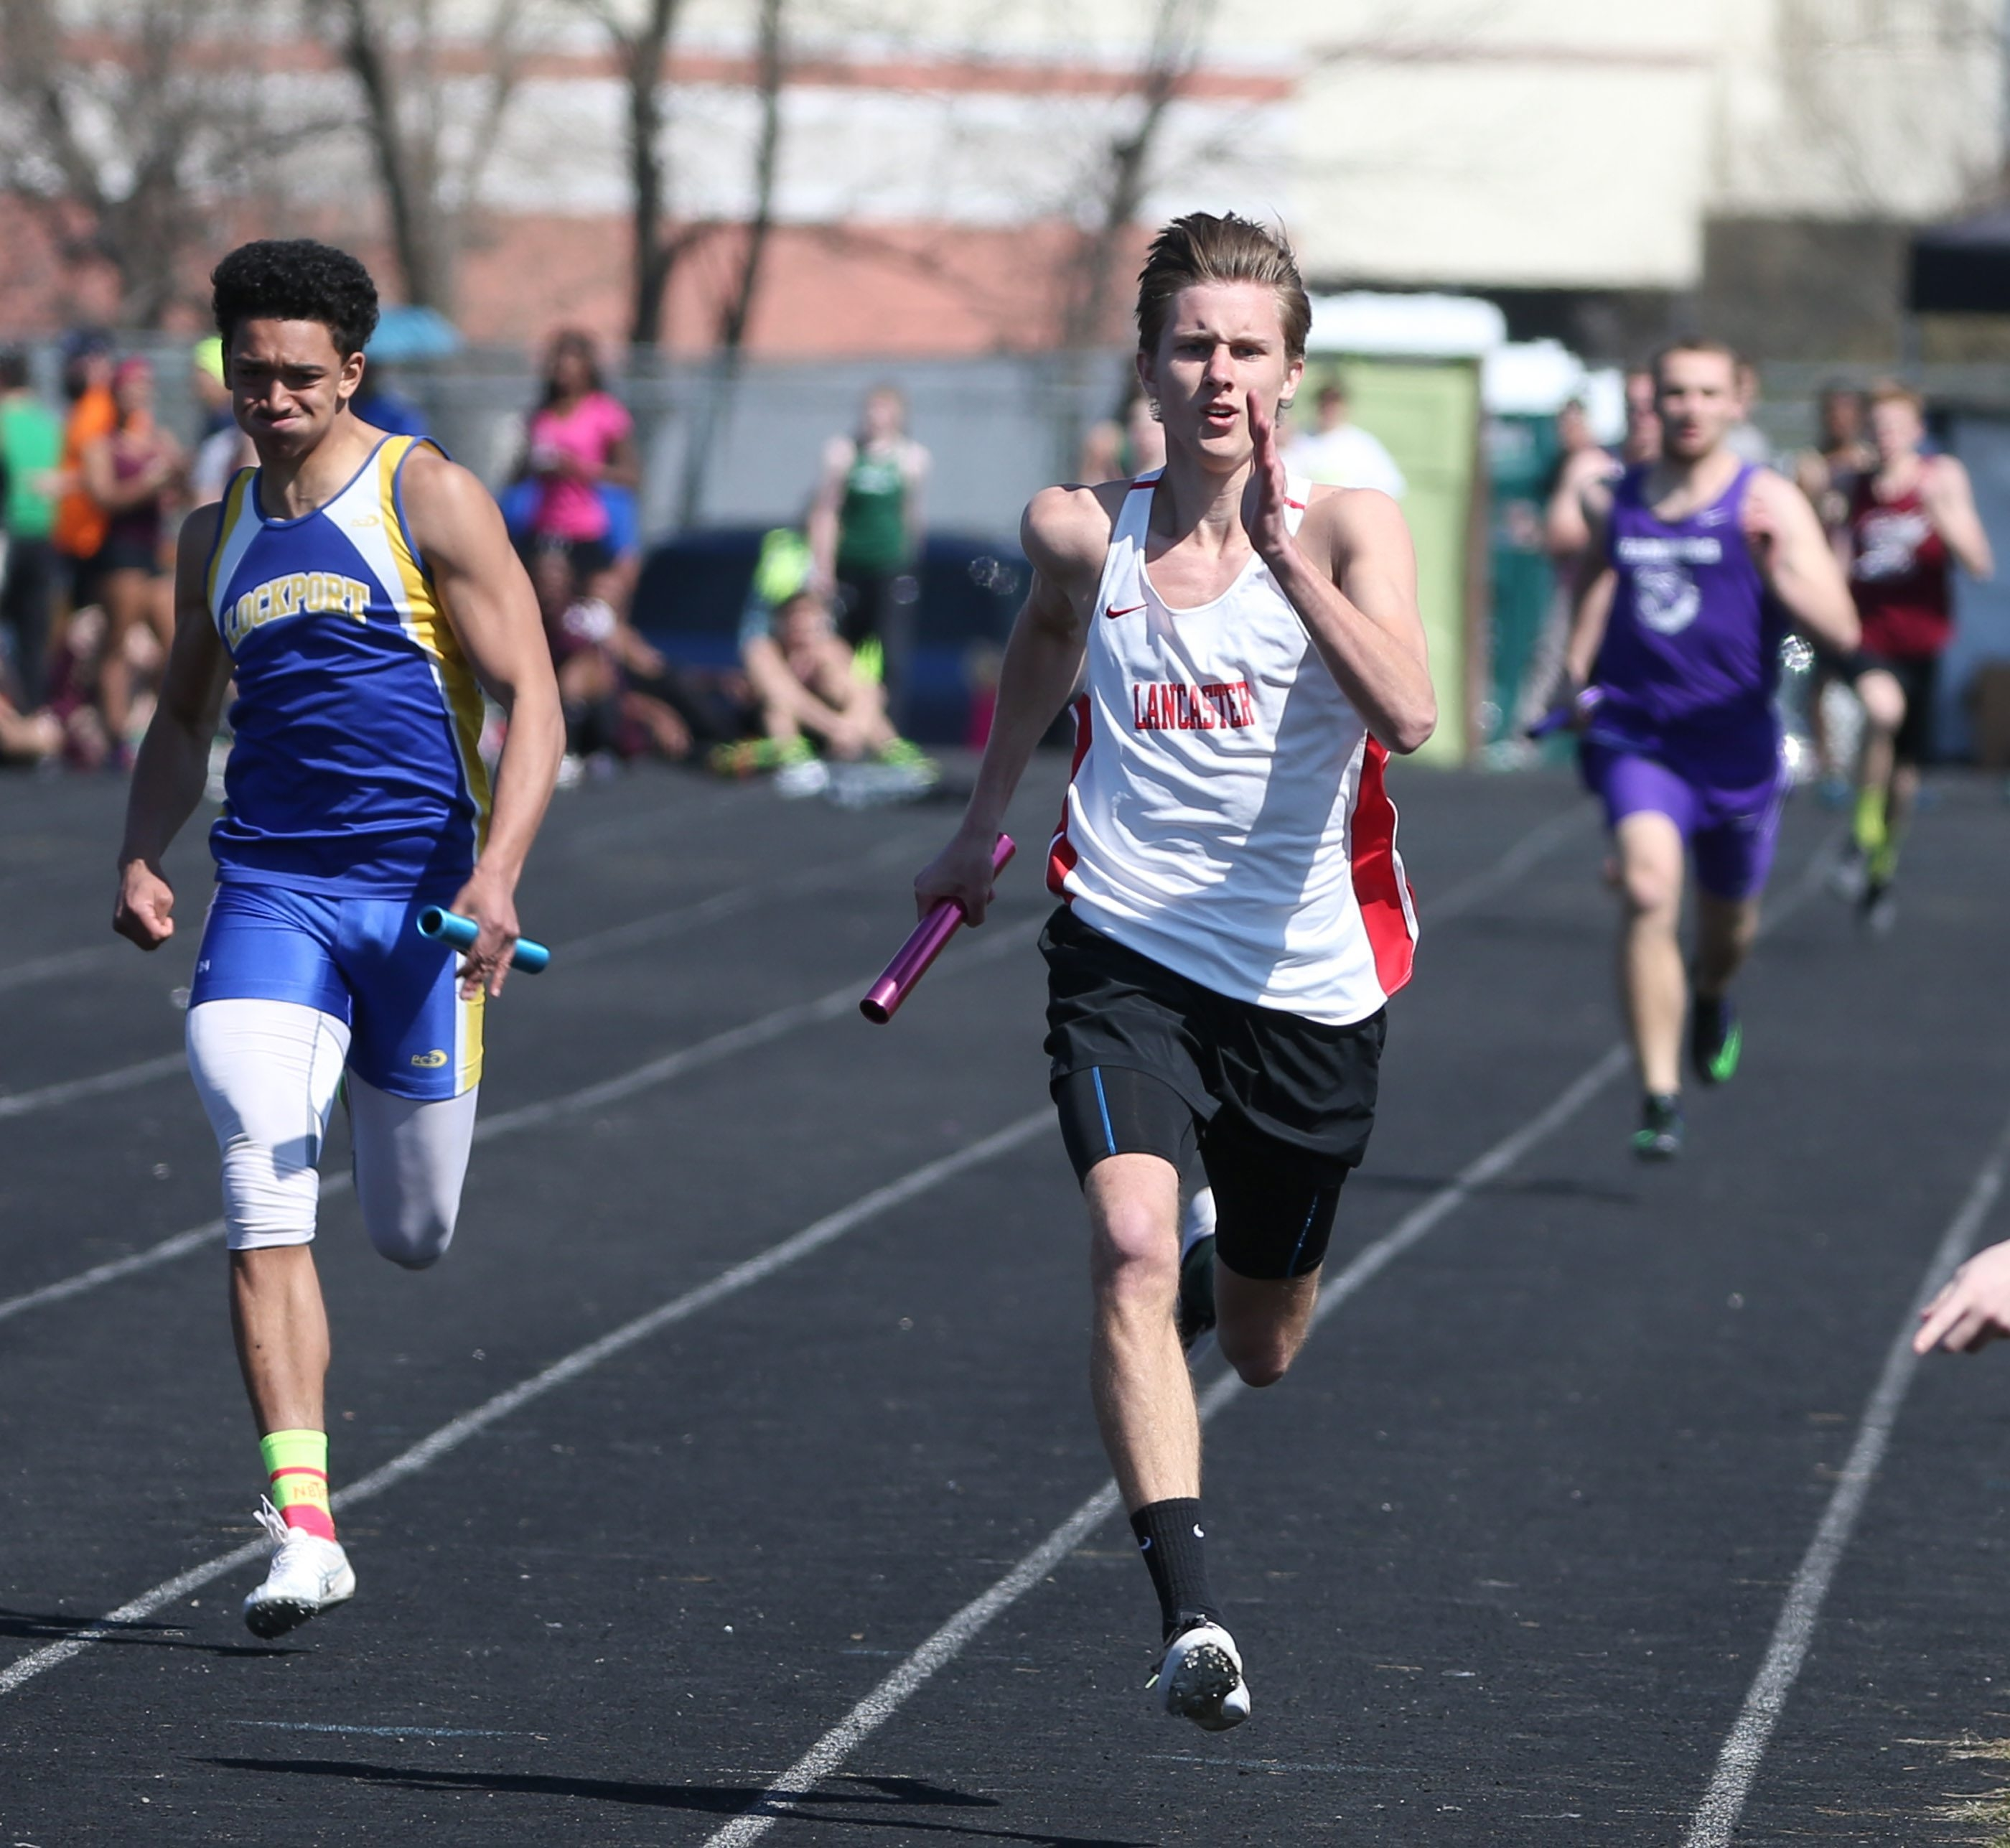 Jesse Kucewicz runs anchor for Lancaster in its 4x200 relay win at the Cheektowaga Warrior Relays. Lancaster won in a record time of 1:31.3.